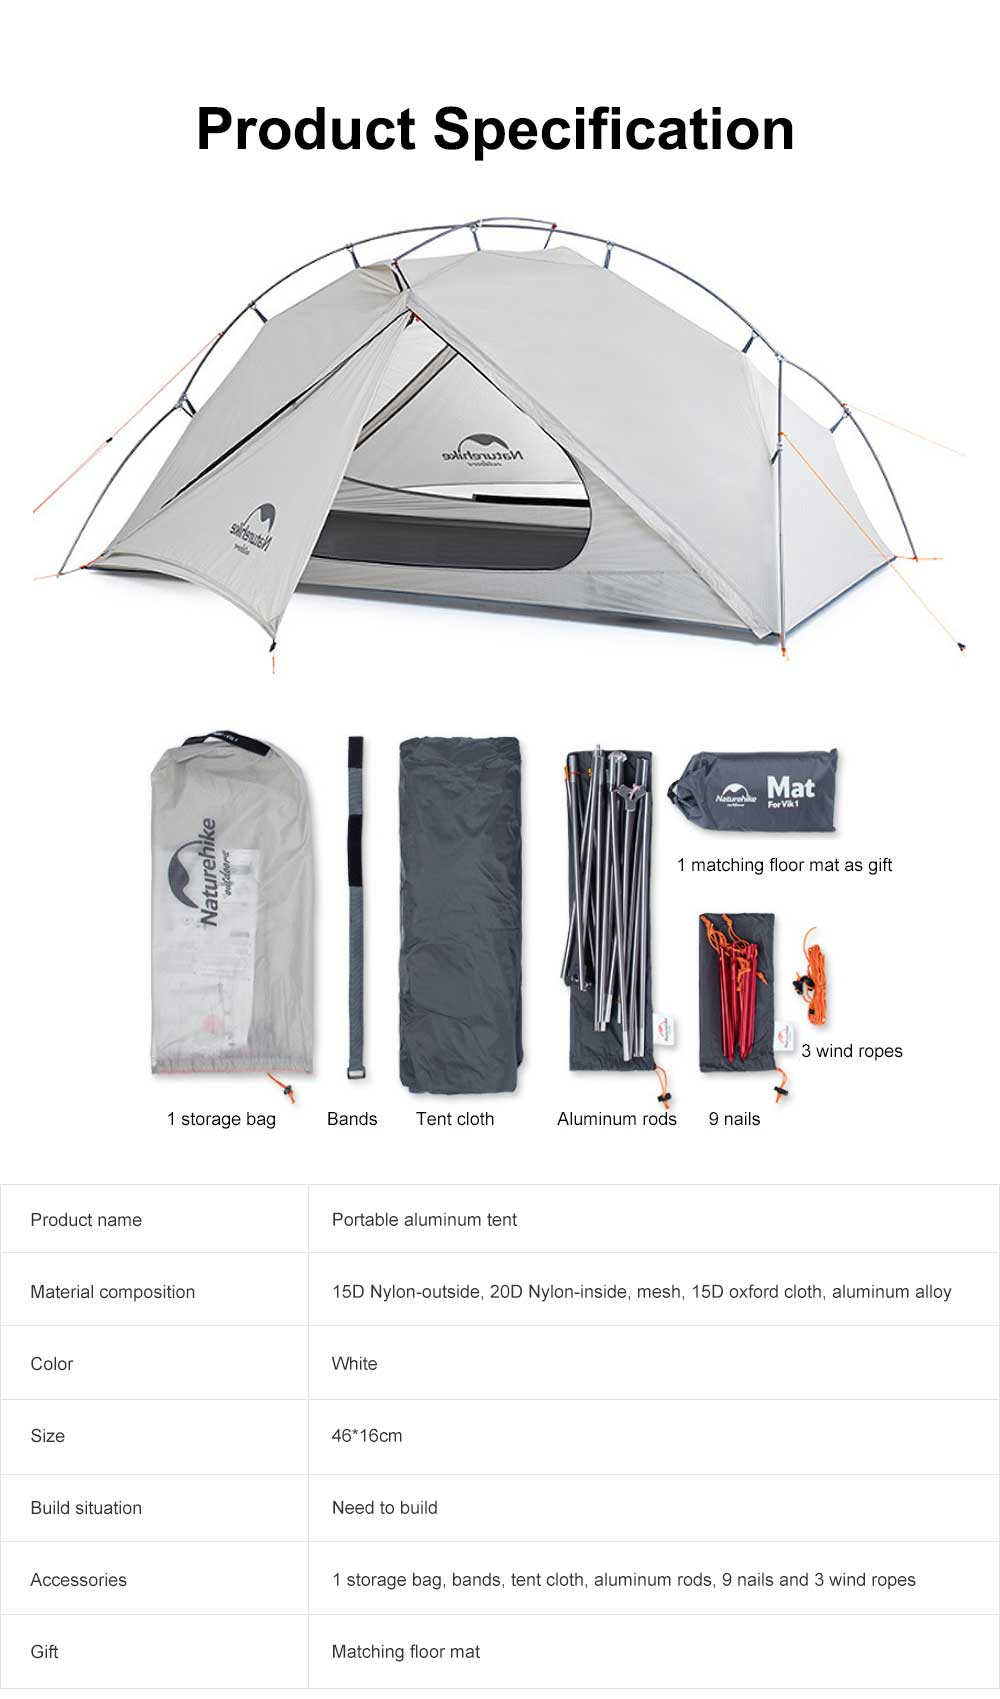 Ultra-light Outdoor Tent Camping Snow Rainproof Tents for Single Person Portable Aluminum Tent 6